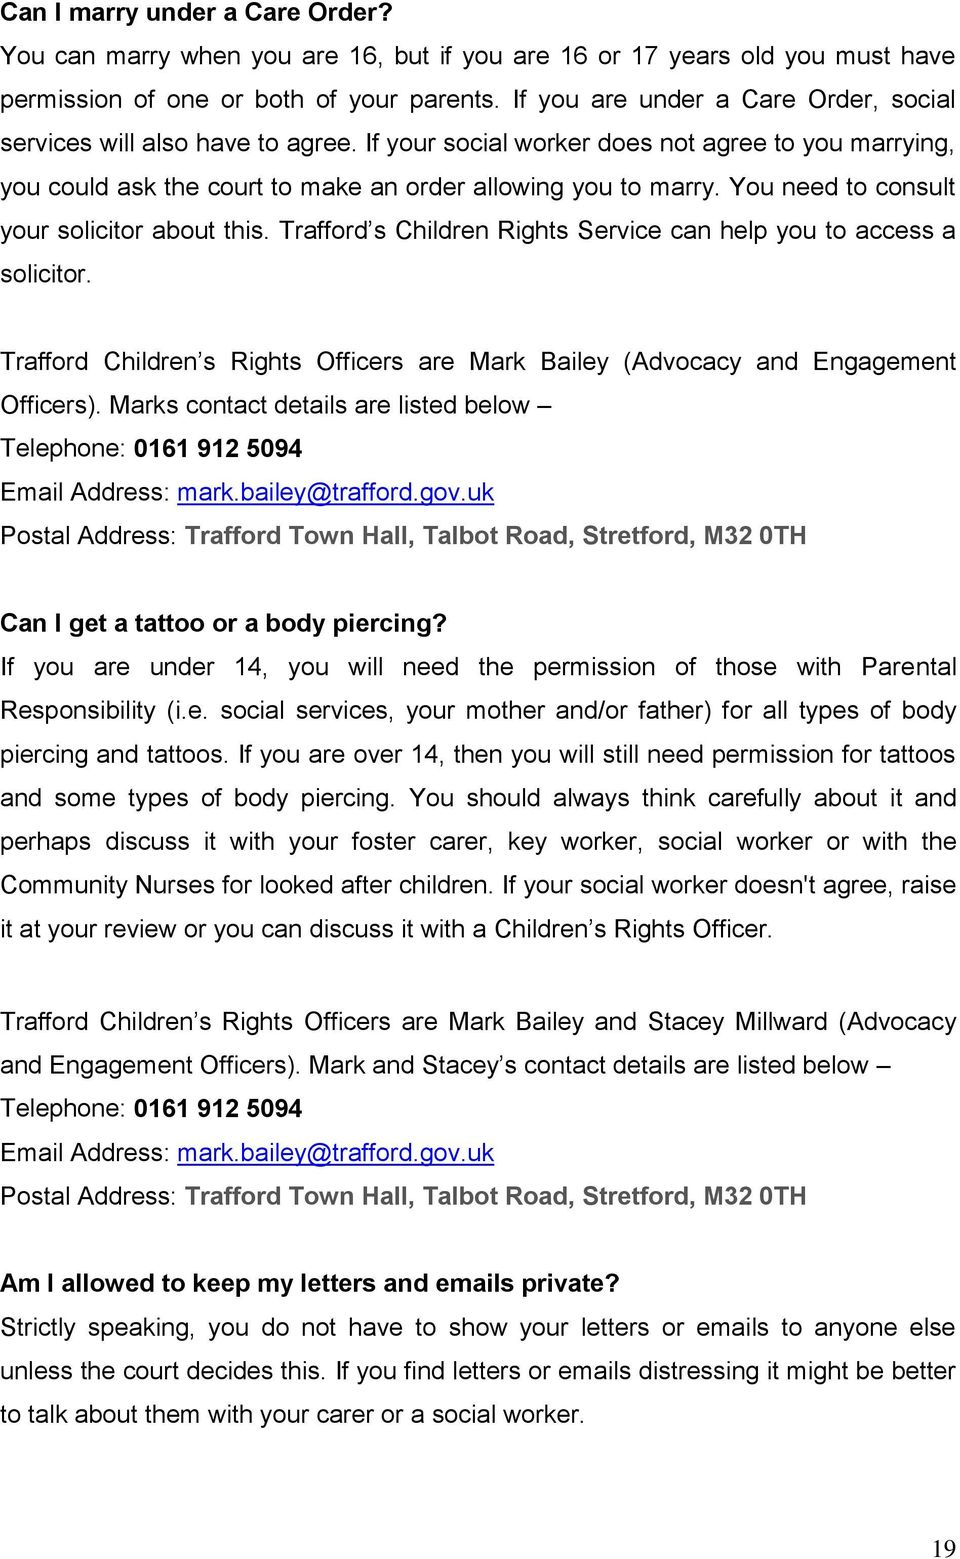 You need to consult your solicitor about this. Trafford s Children Rights Service can help you to access a solicitor.